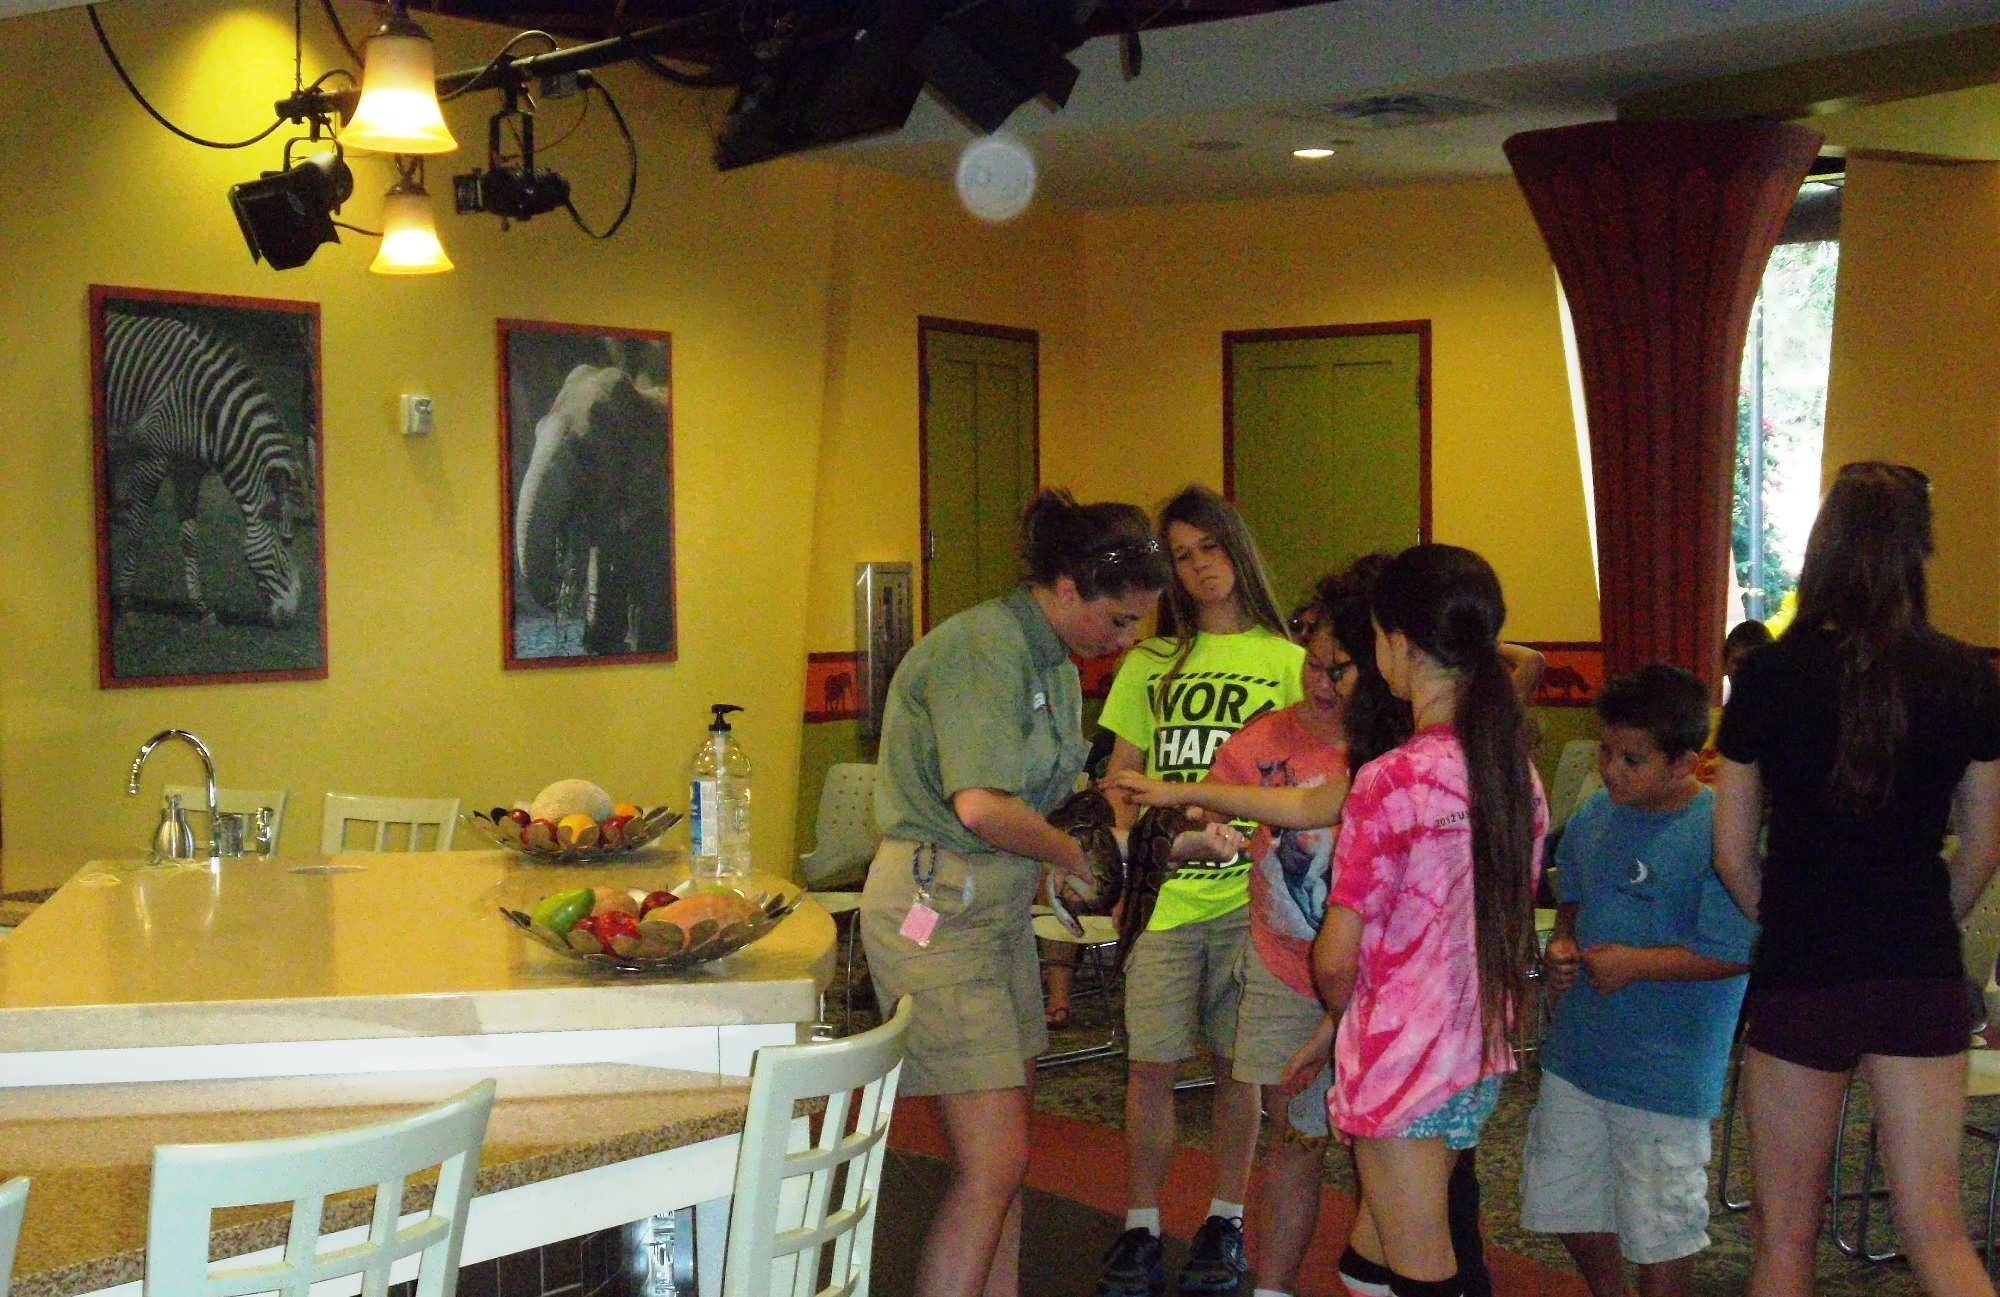 Busch Garden Tampa trip report - November 2013 (hands-on at the ...